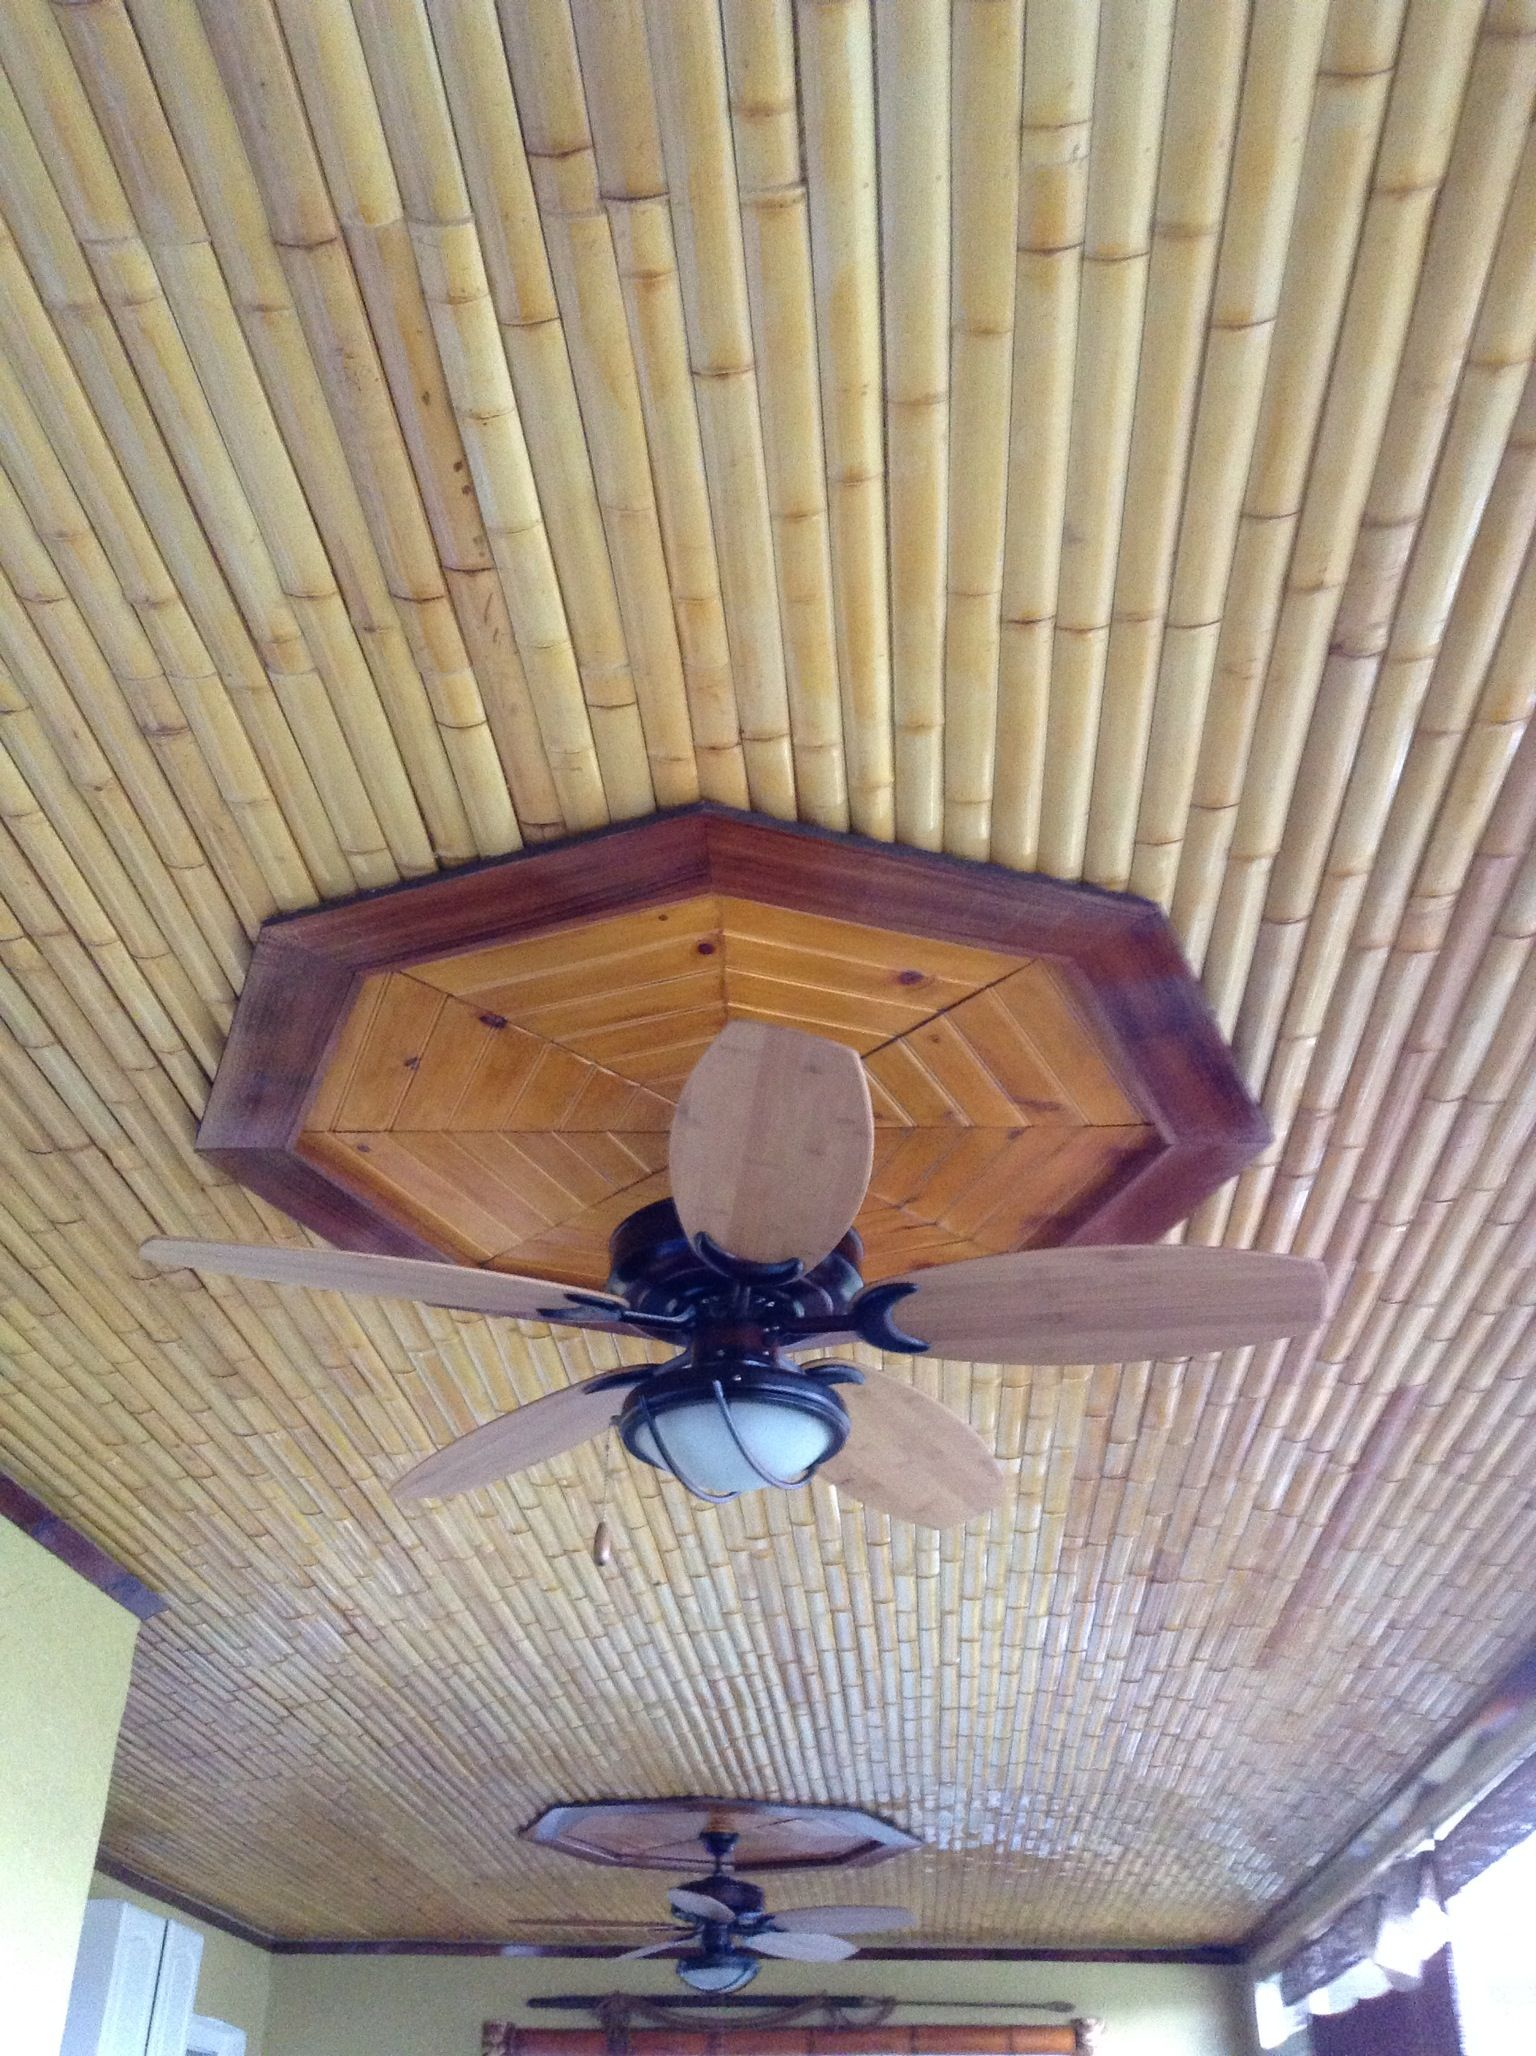 Bamboo ceiling bamboo ceiling pinterest bamboo ceiling home interiors affordable bamboo ceiling tiles also bamboo ceiling ideas from applying a bamboo ceiling fan dailygadgetfo Images